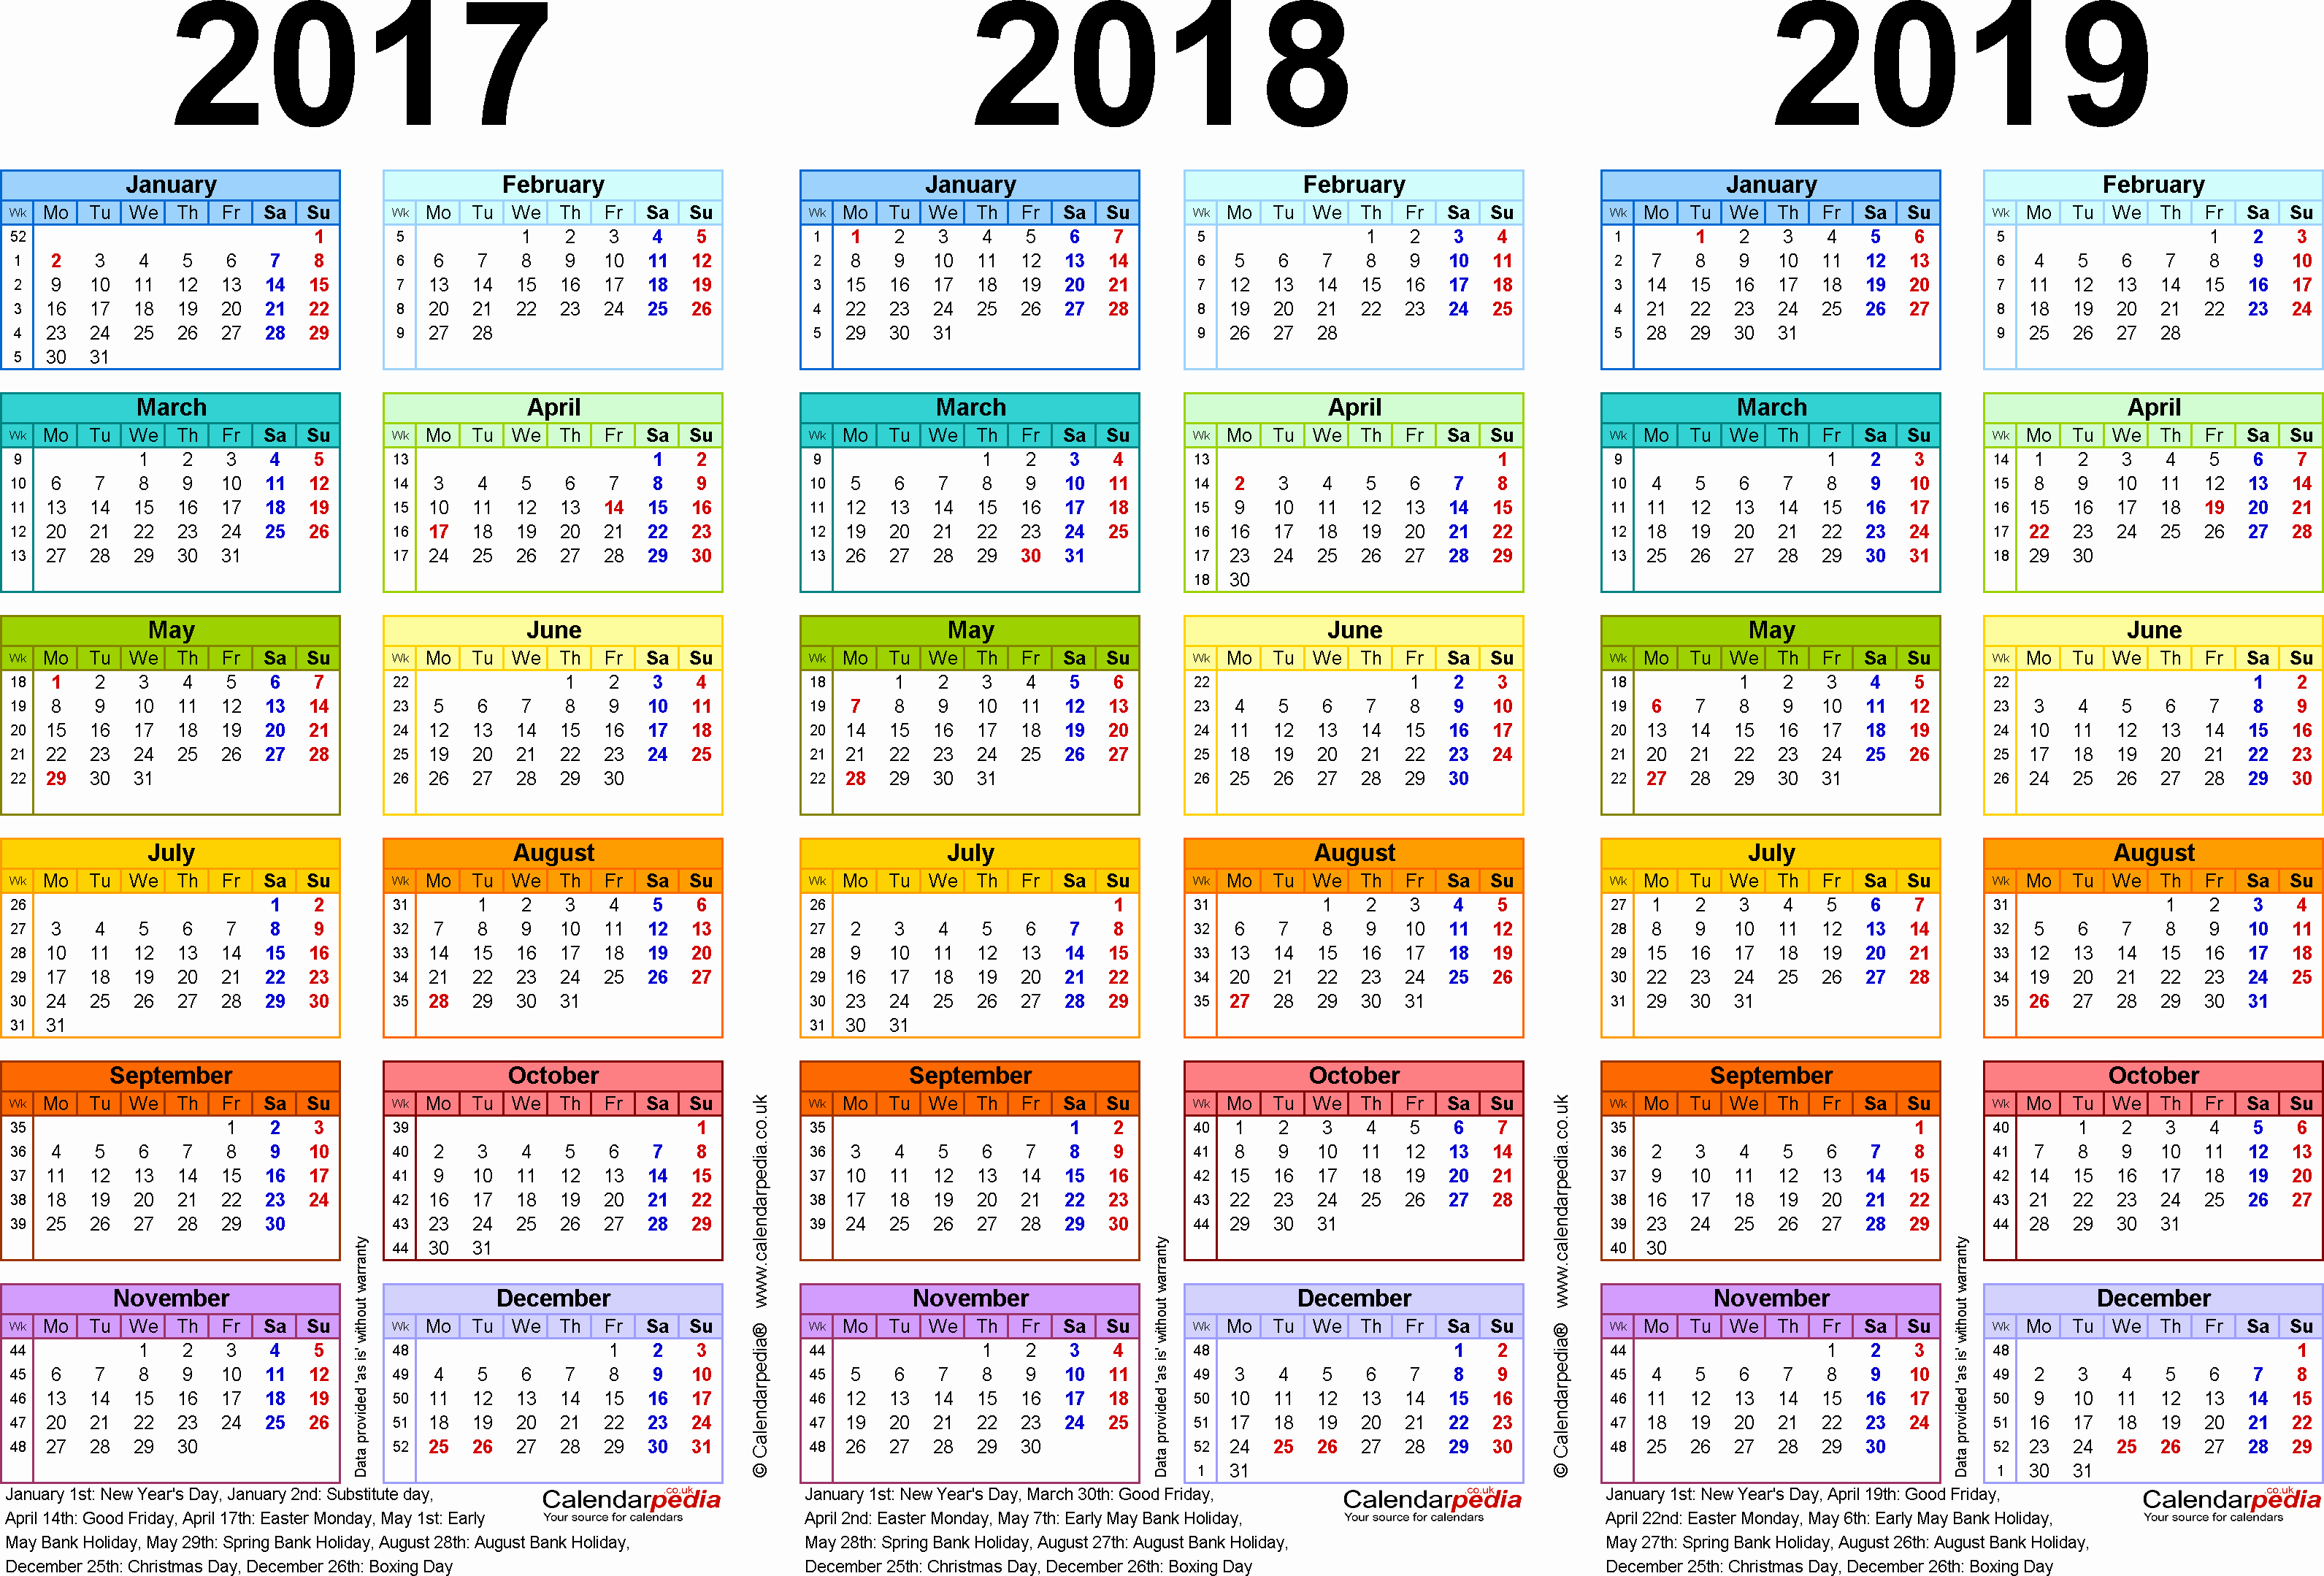 2017 Full Year Calendar Template New Three Year Calendars for 2017 2018 & 2019 Uk for Pdf